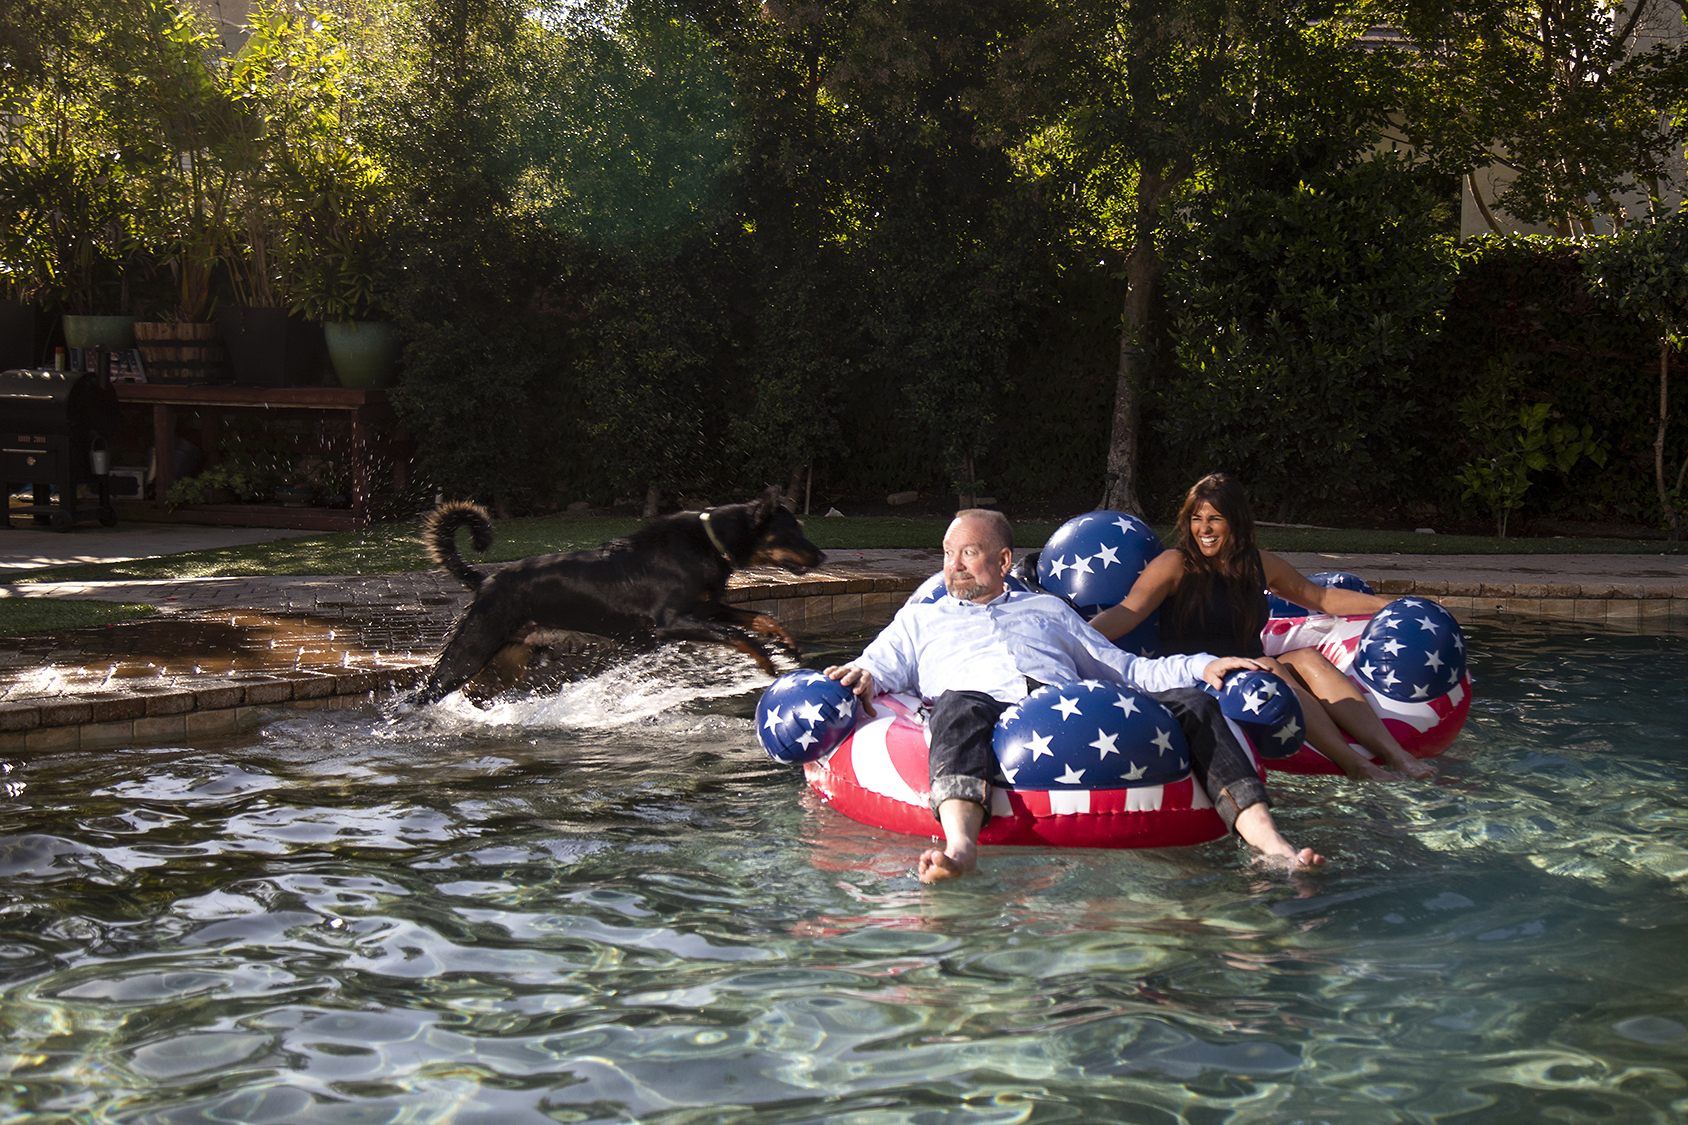 Michele Harrington with her husband and dog in their backyard pool, playing